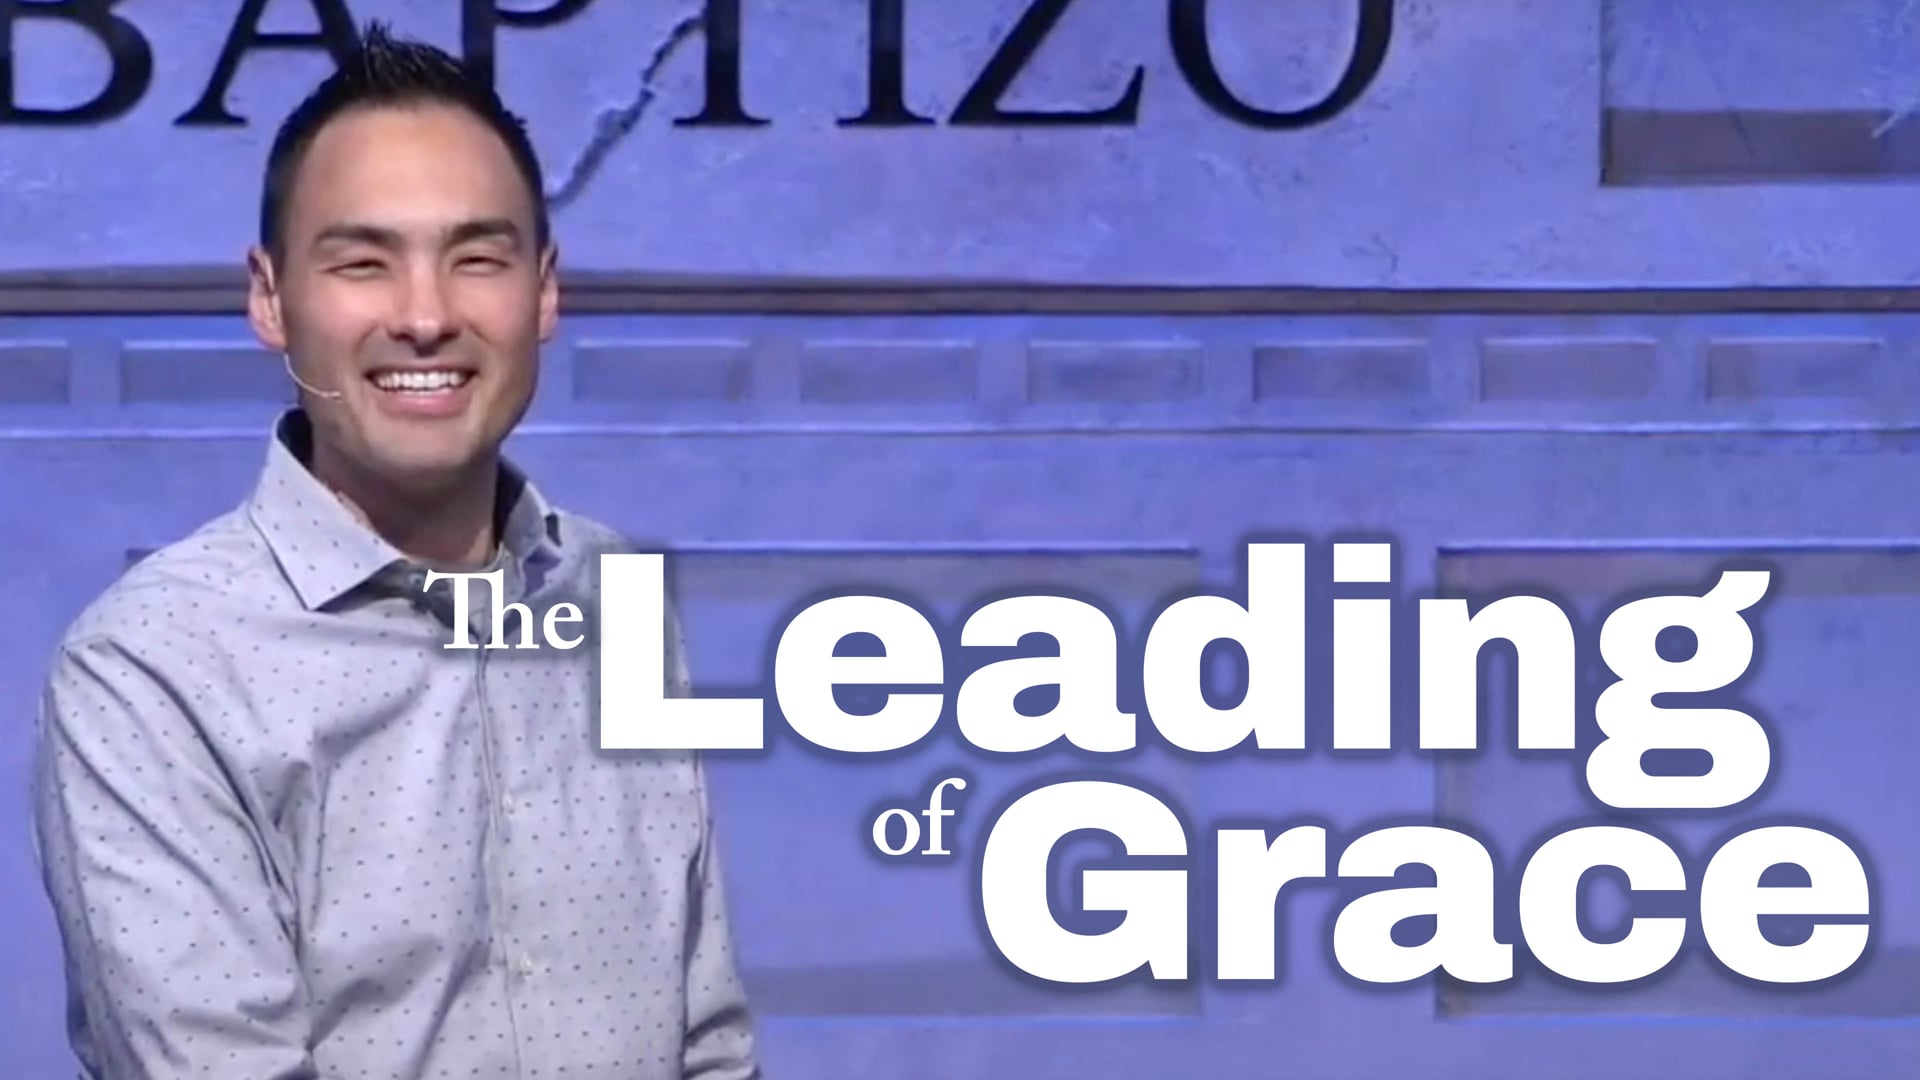 The Leading of Grace